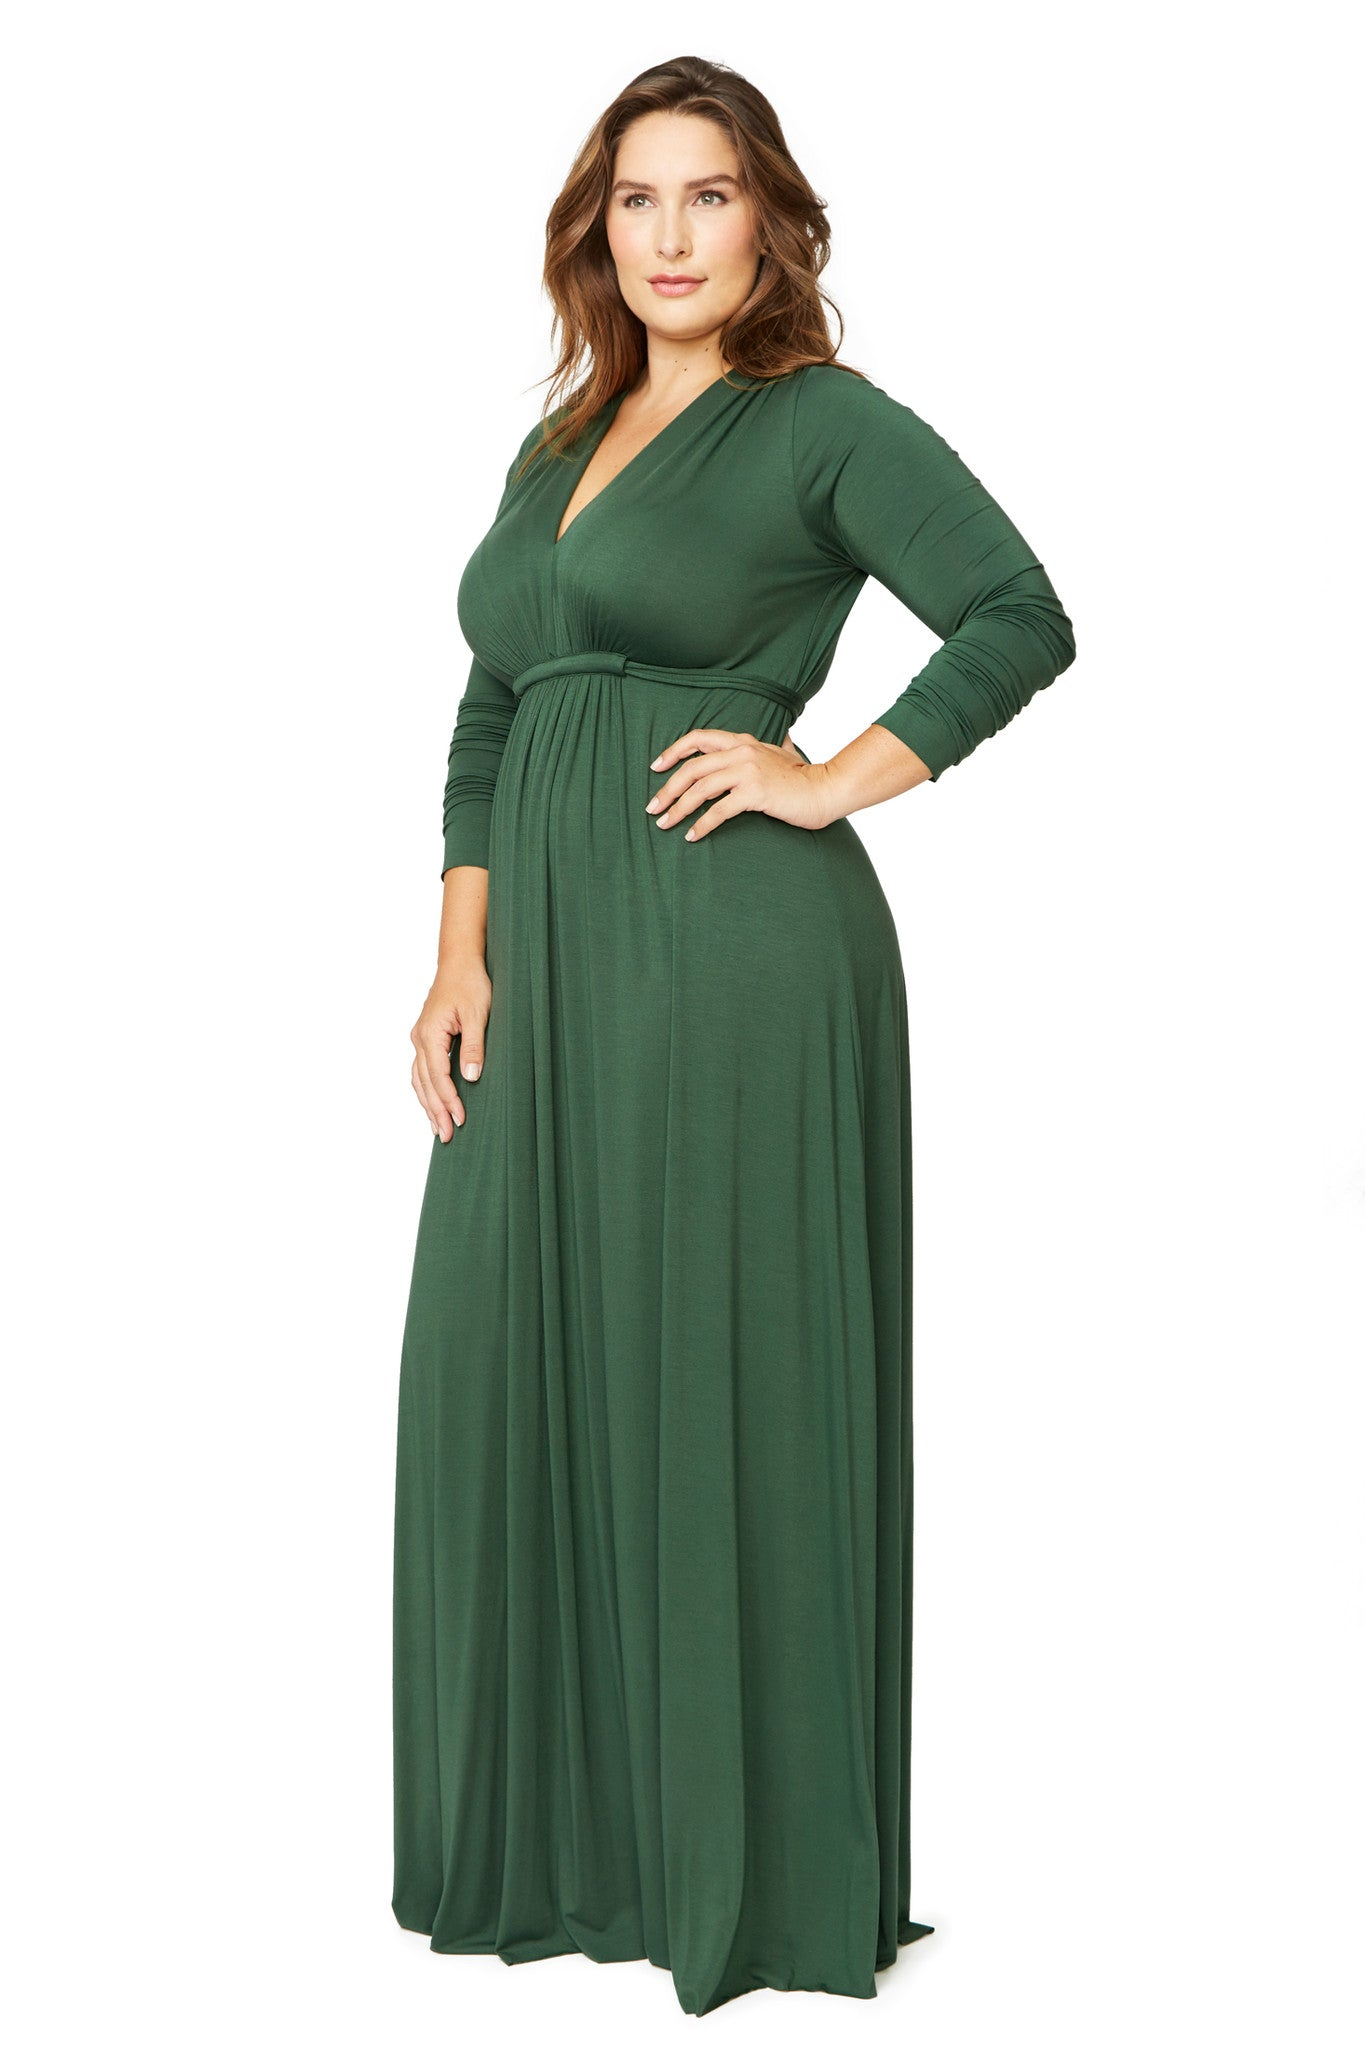 Long Sleeve Full Length Caftan - Fir